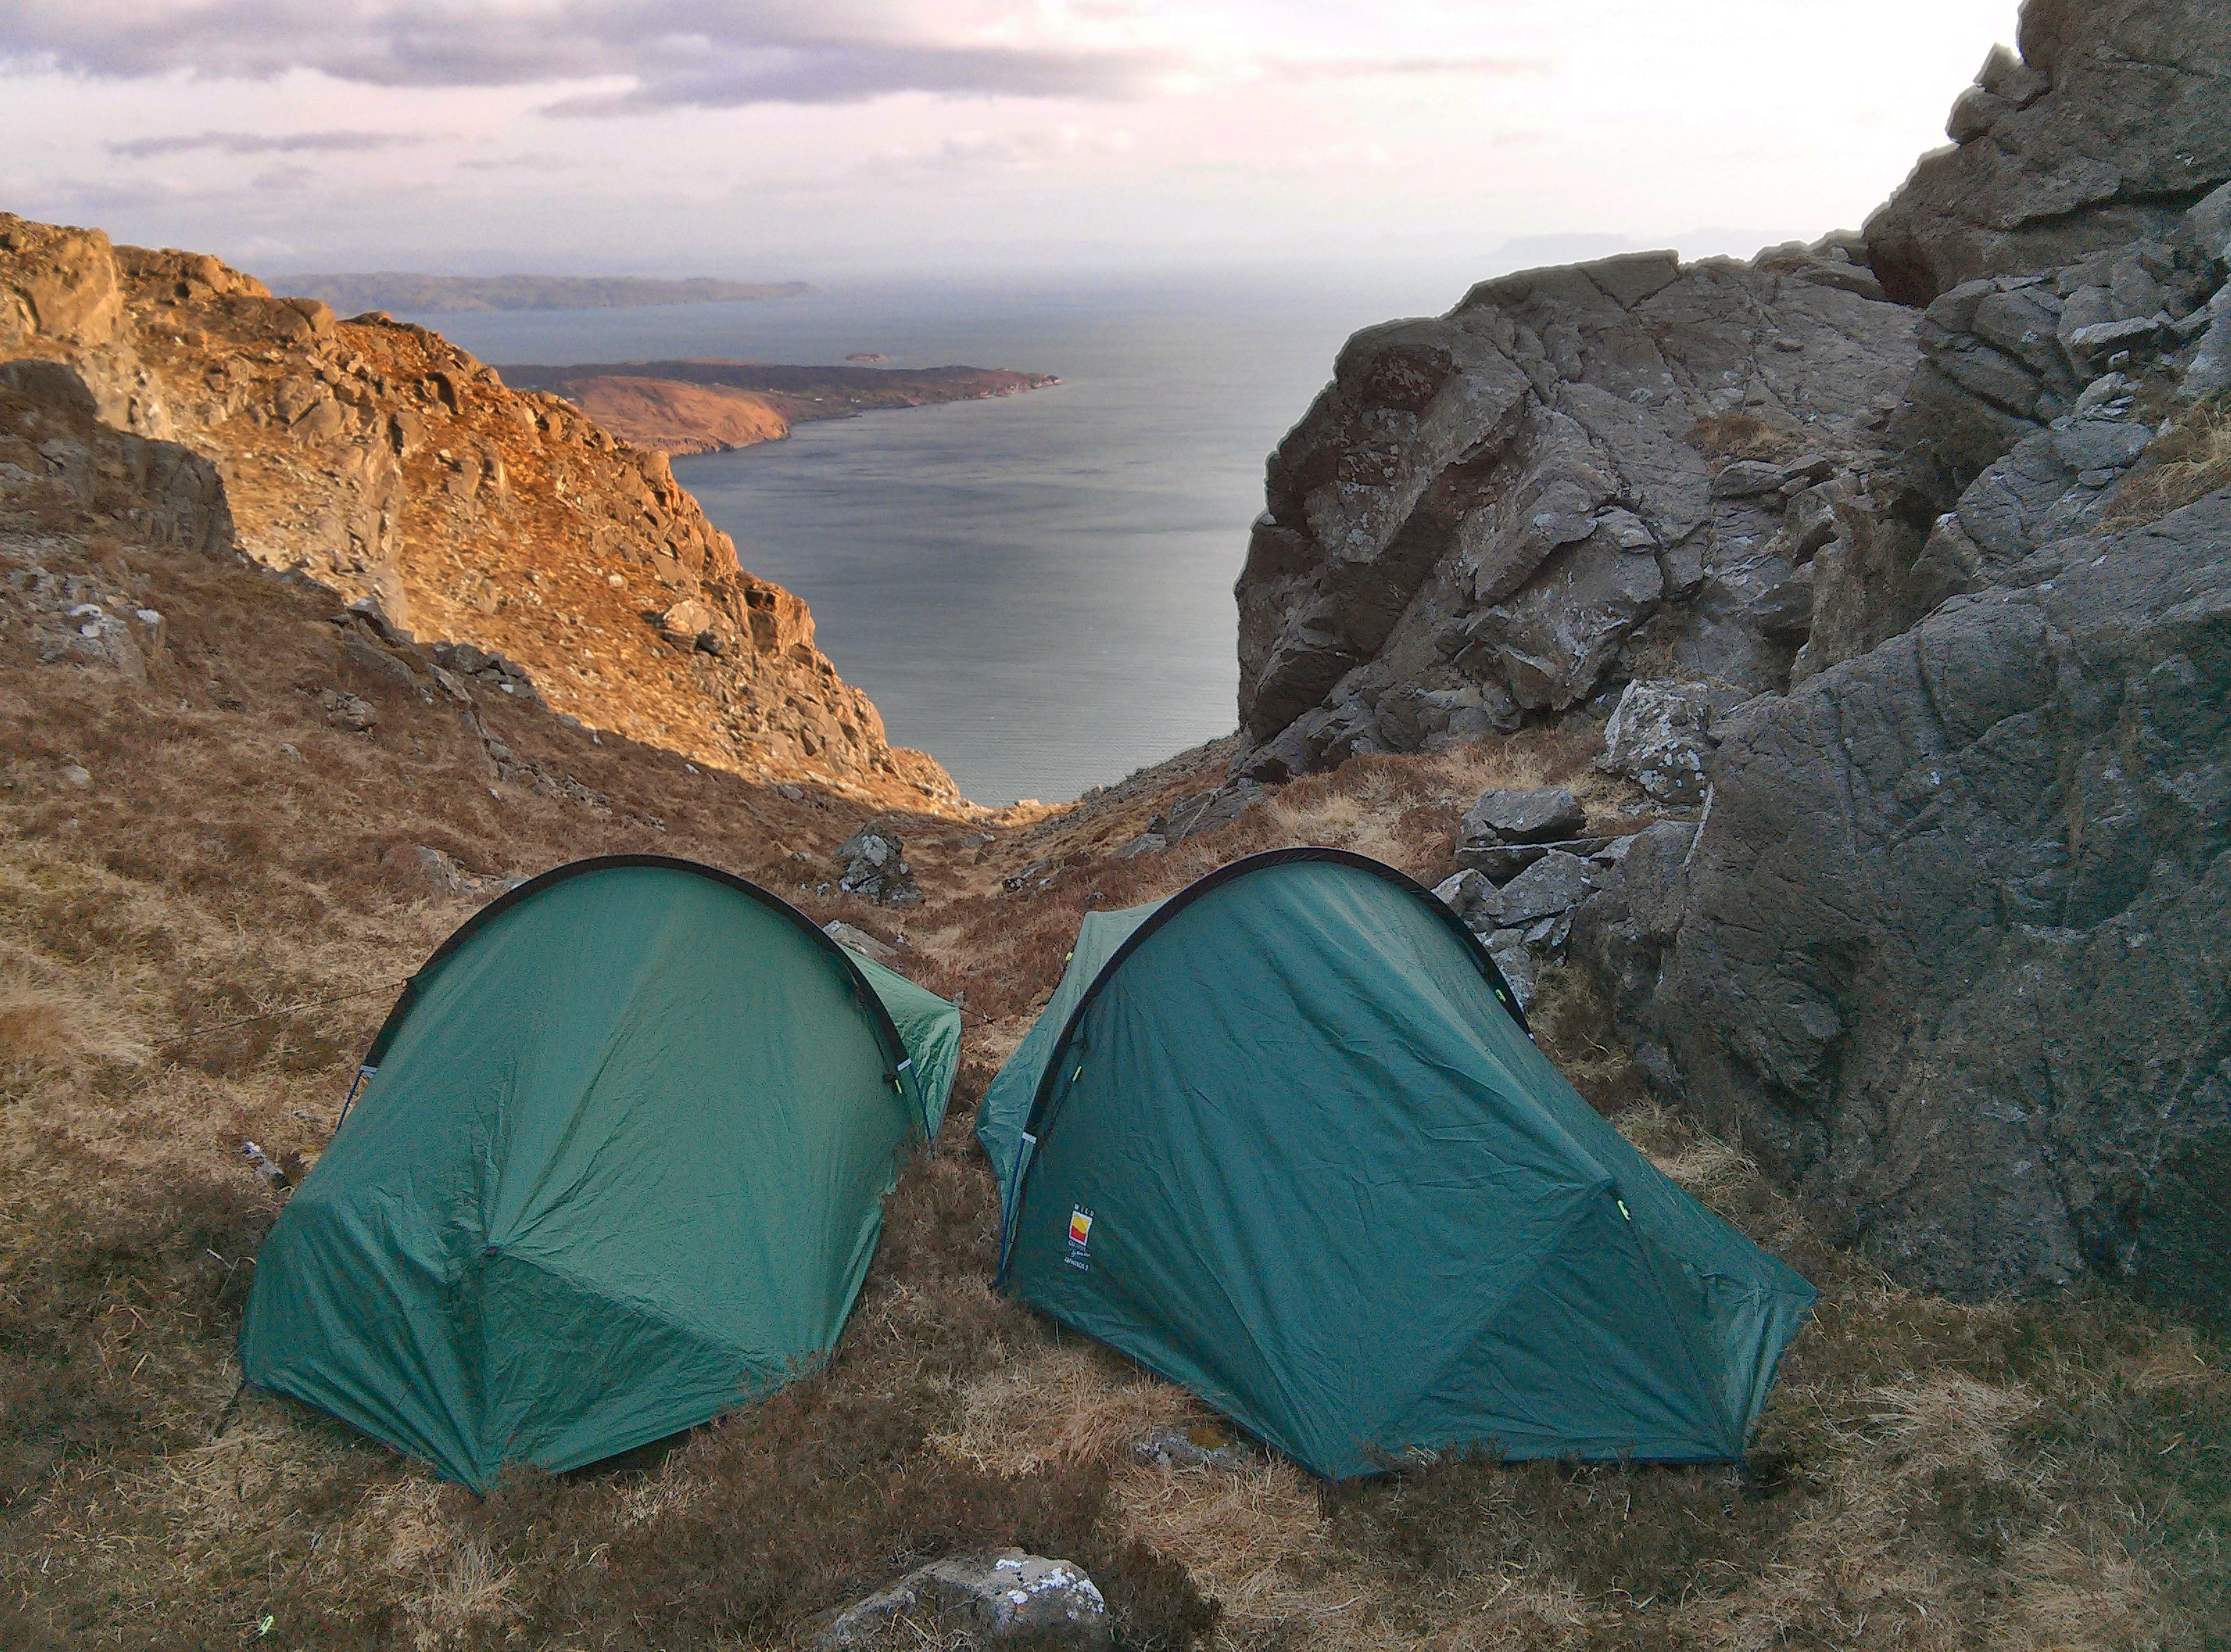 Sgurr Na Stri Wild Camp - Tent Pitch - Isle Of SKye - Scotland Photography